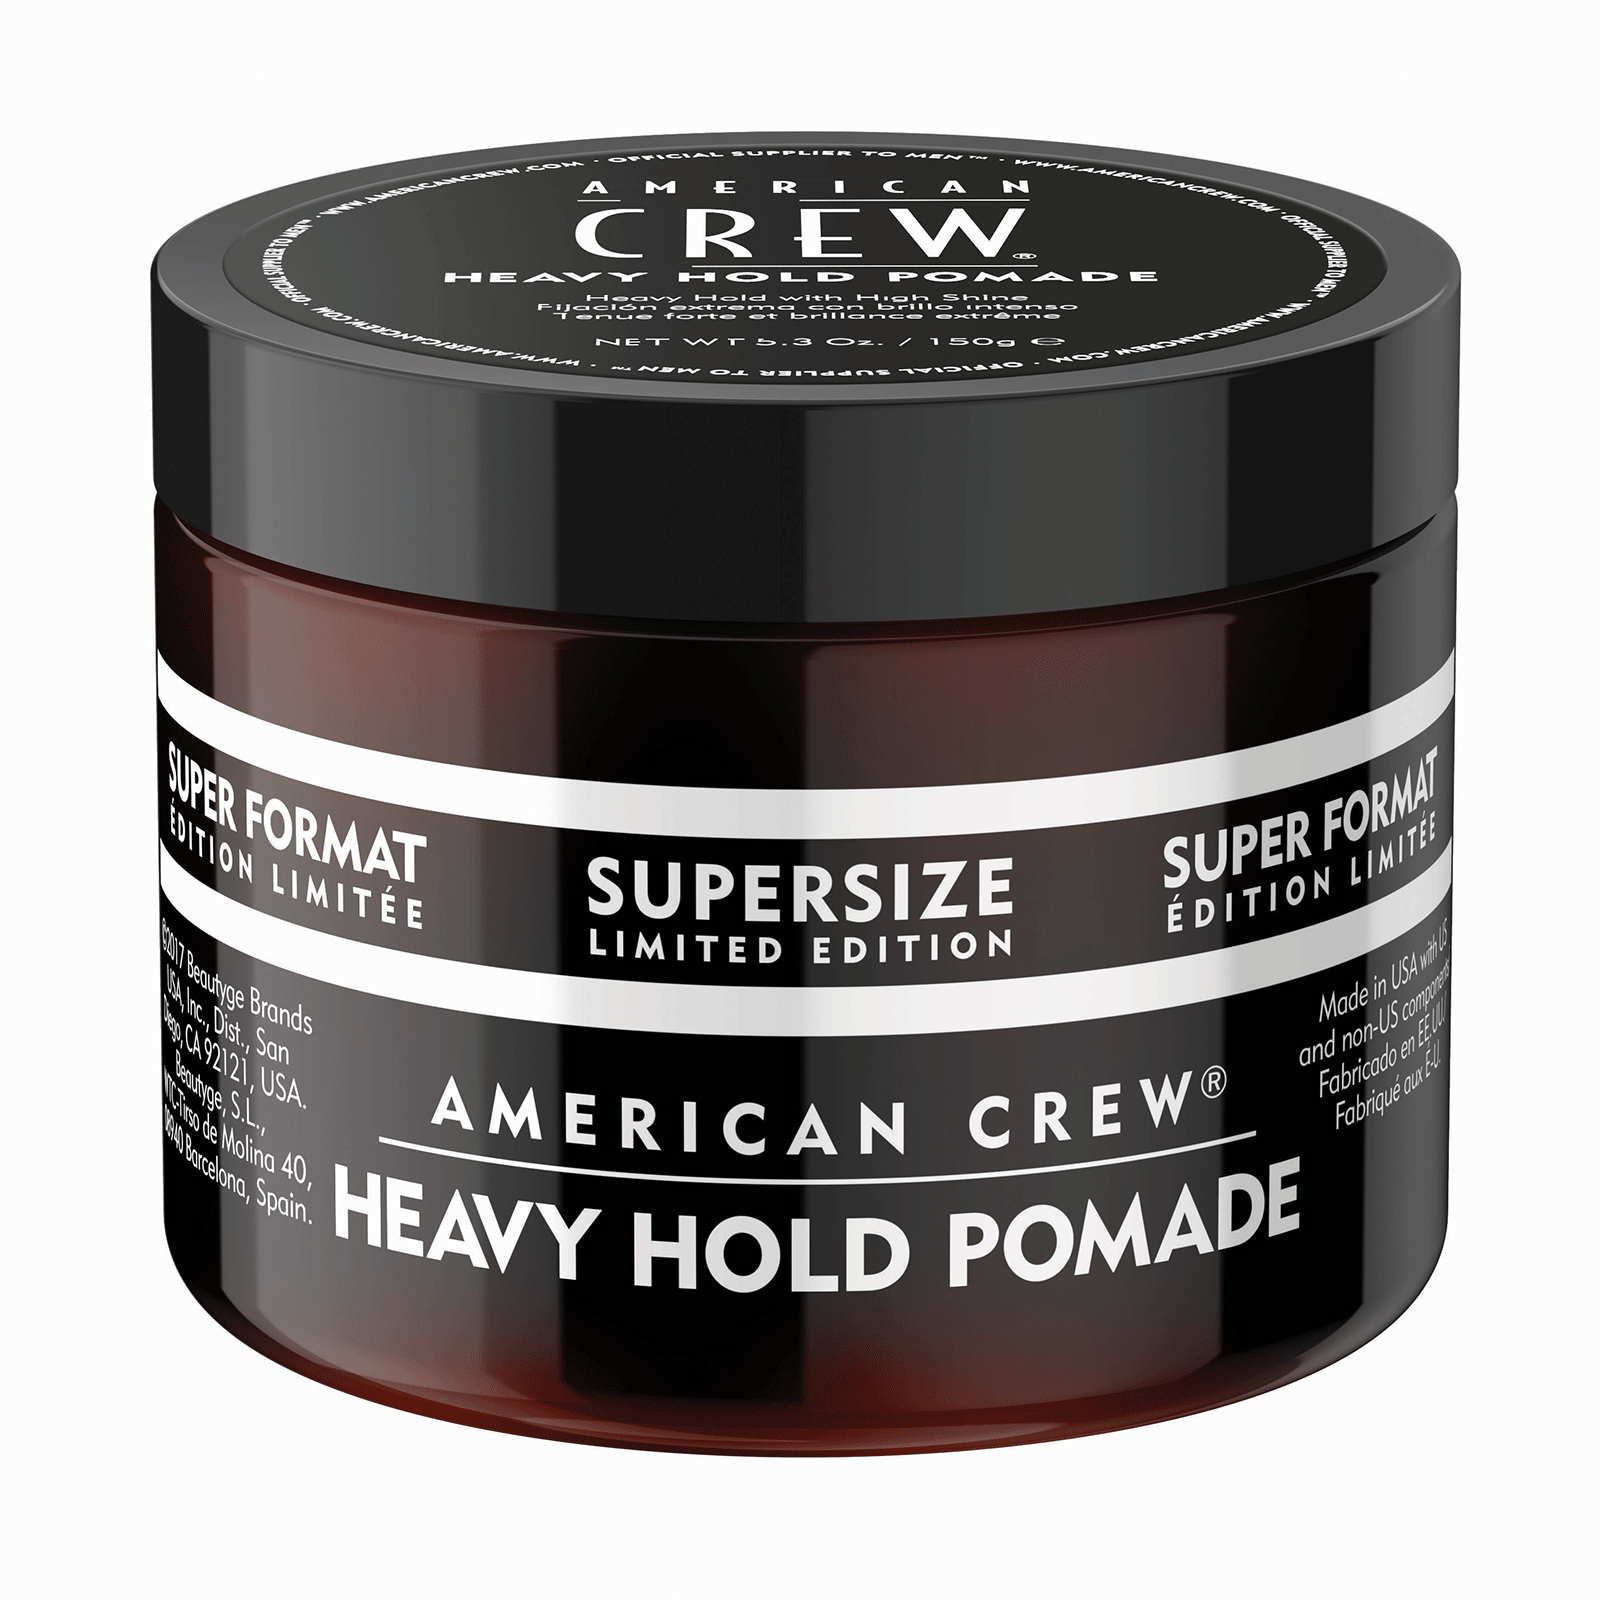 Heavy Hold Pomade - Super Size